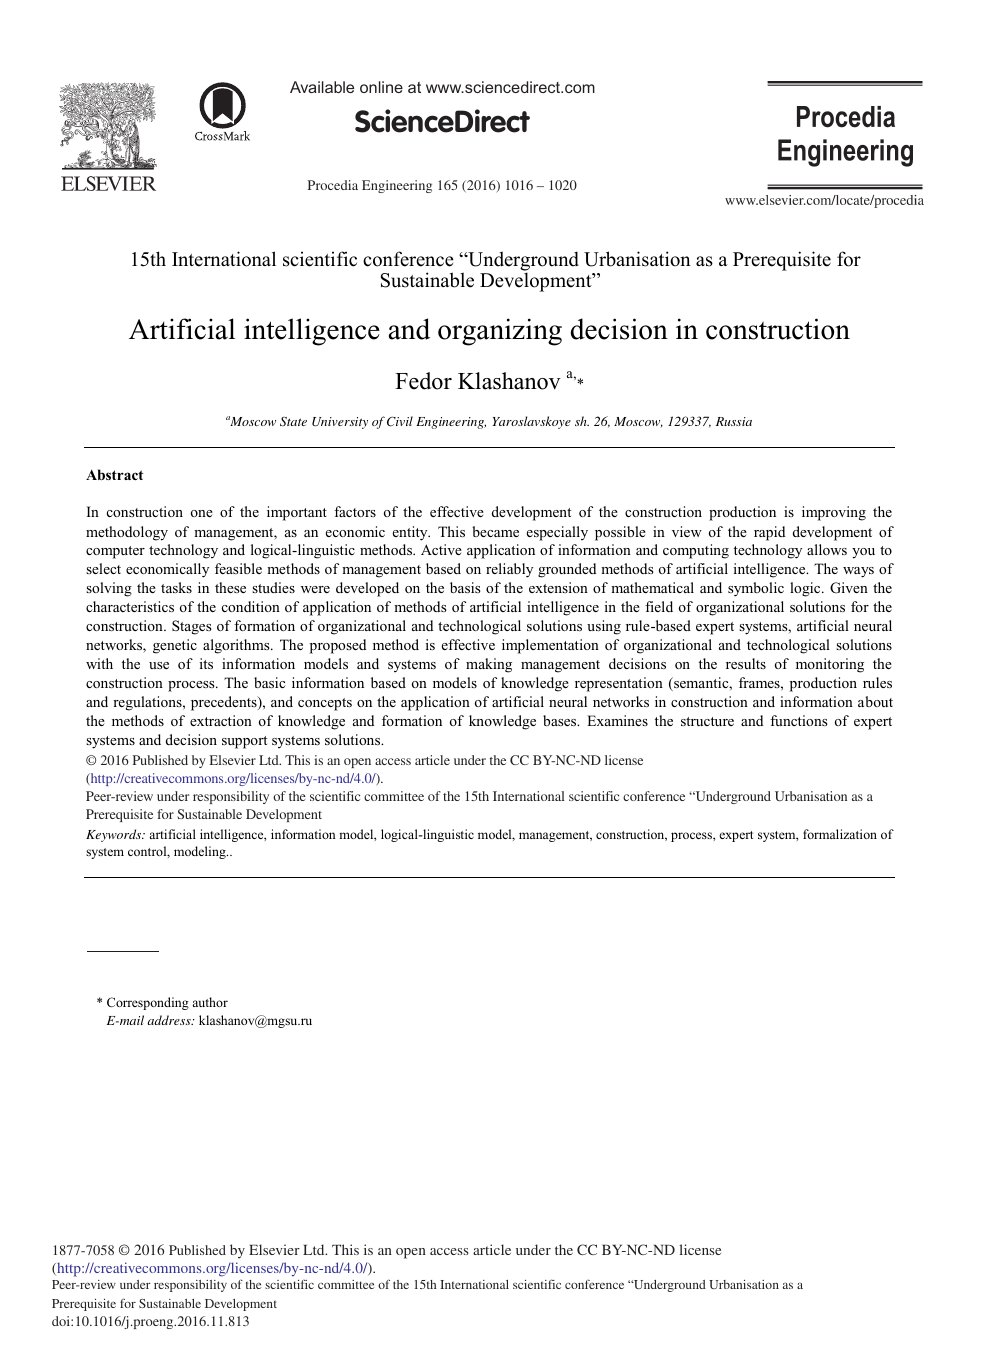 005 Artificial Intelligence Research Paper Phenomenal 2017 Latest On Pdf Full